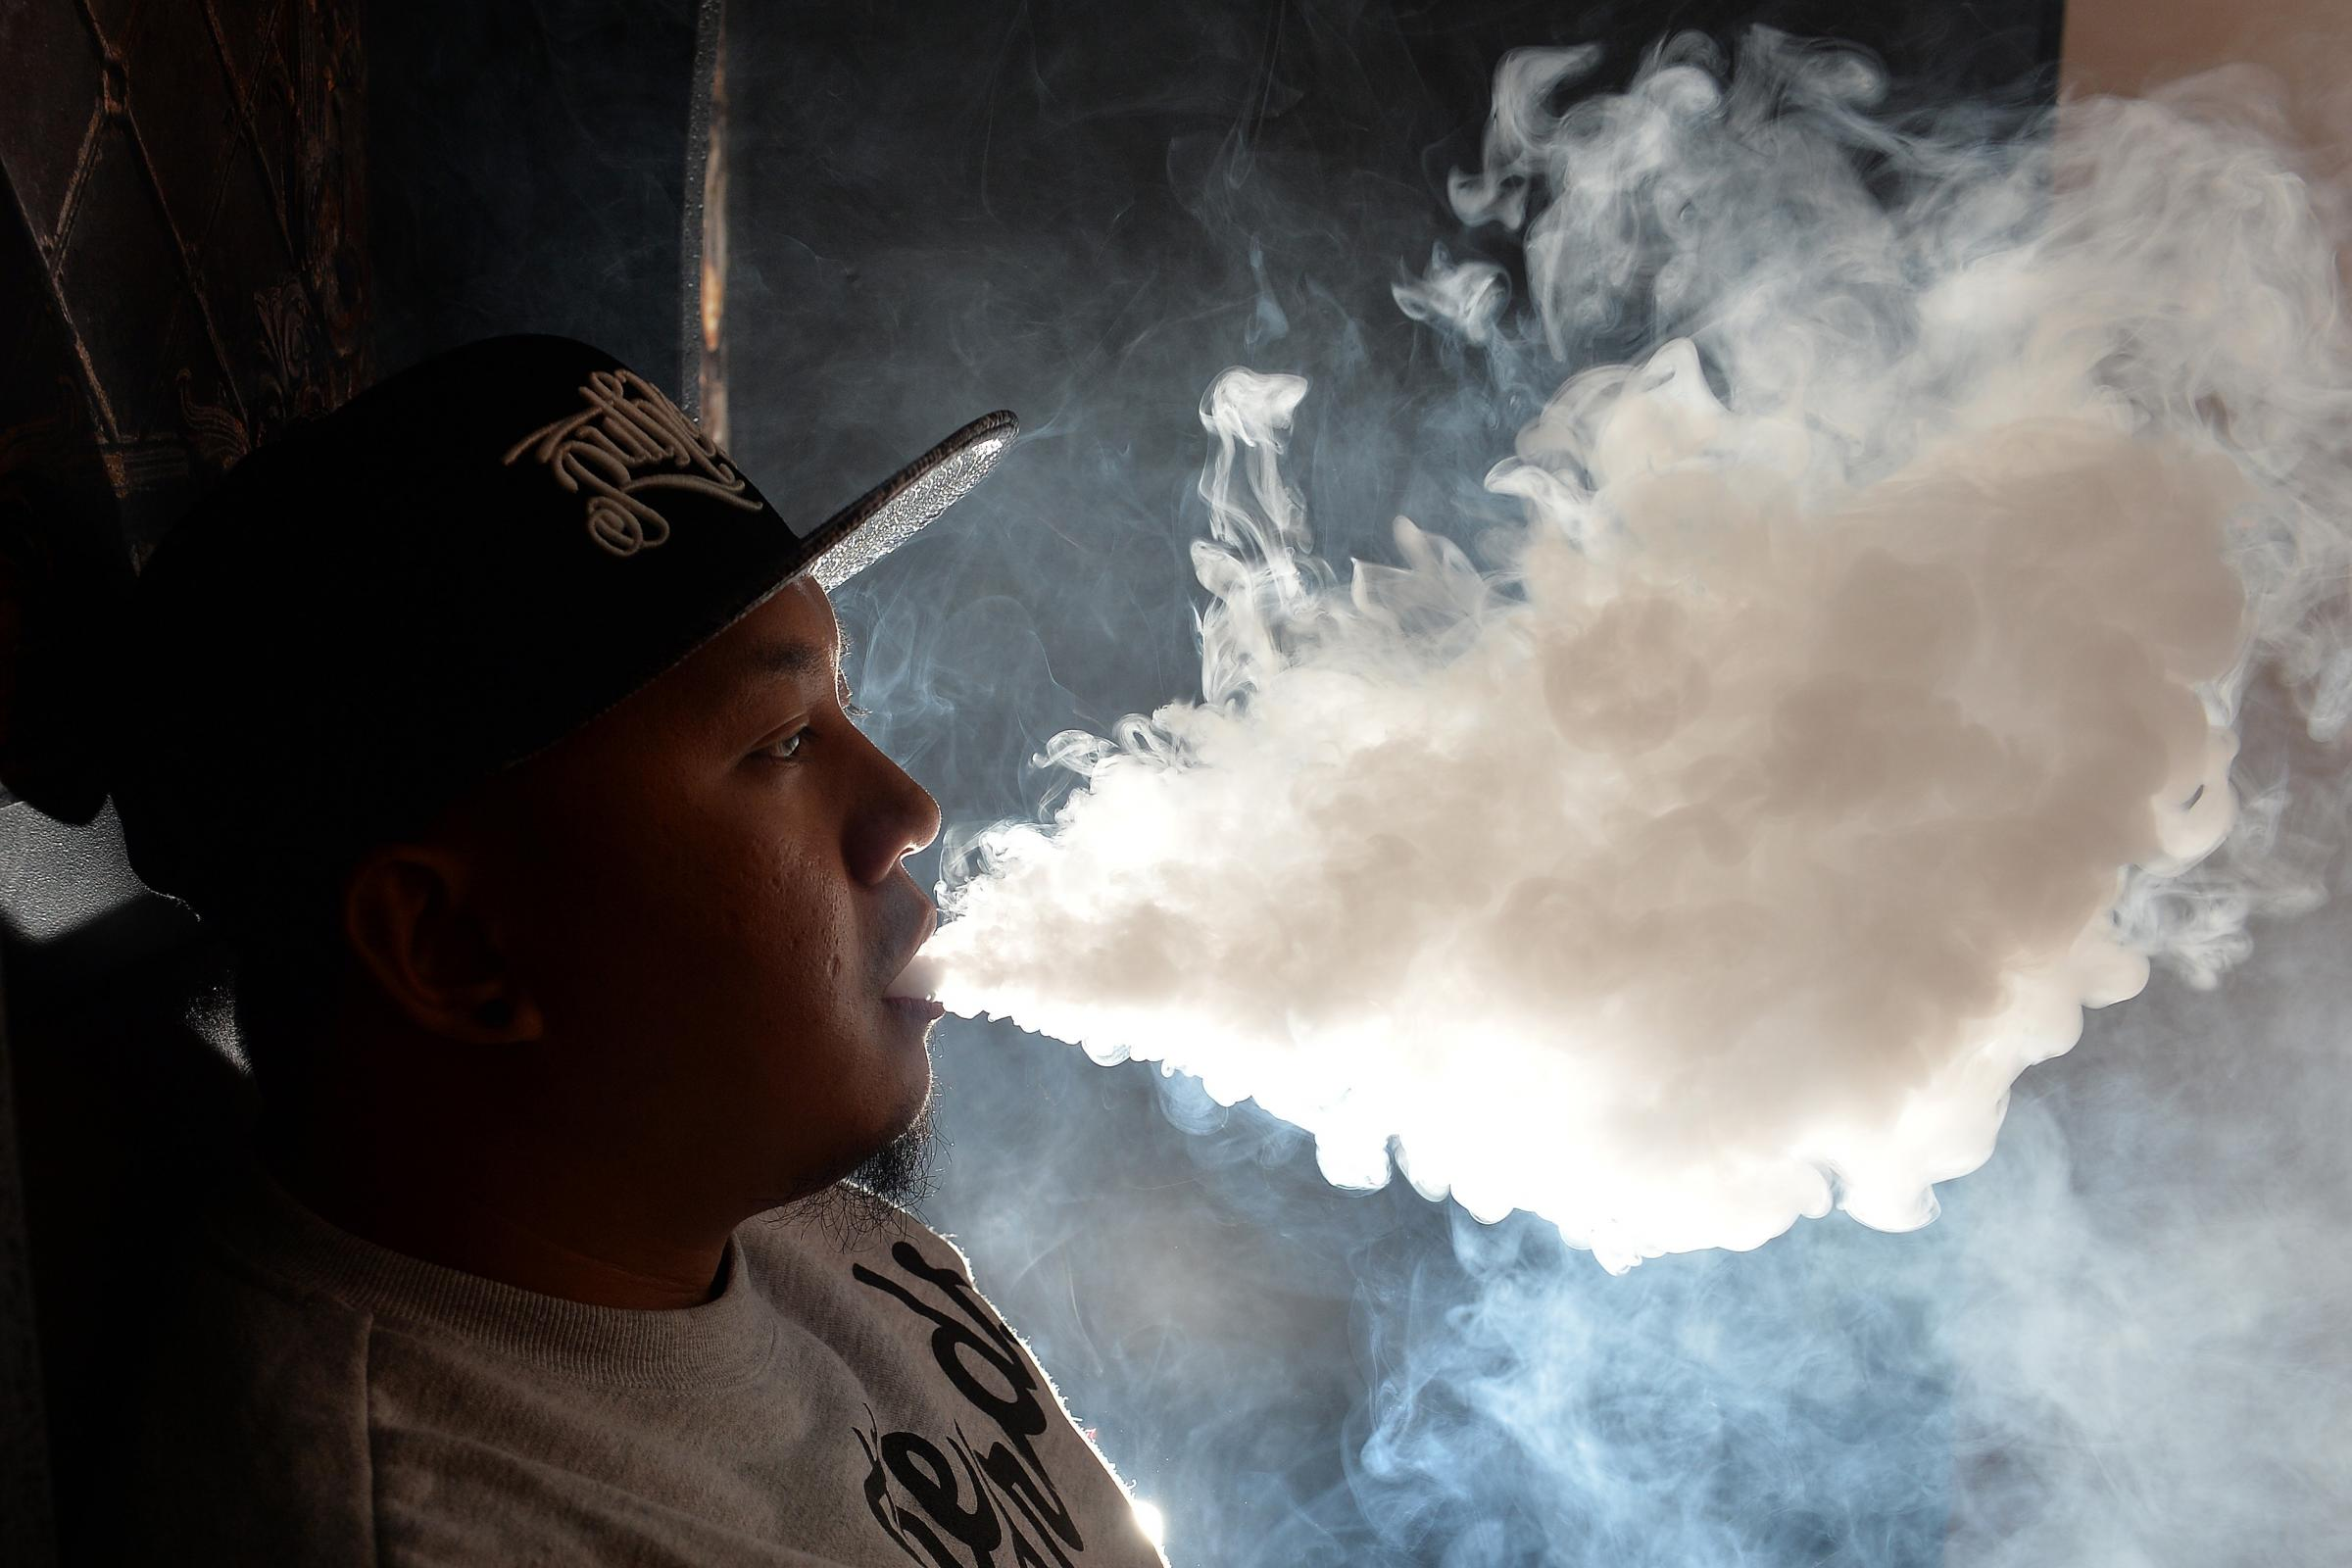 Puffing out smoke from an e-cigarette. New research suggests vaping may increase the risk of cancers. (John Stillwell/PA)